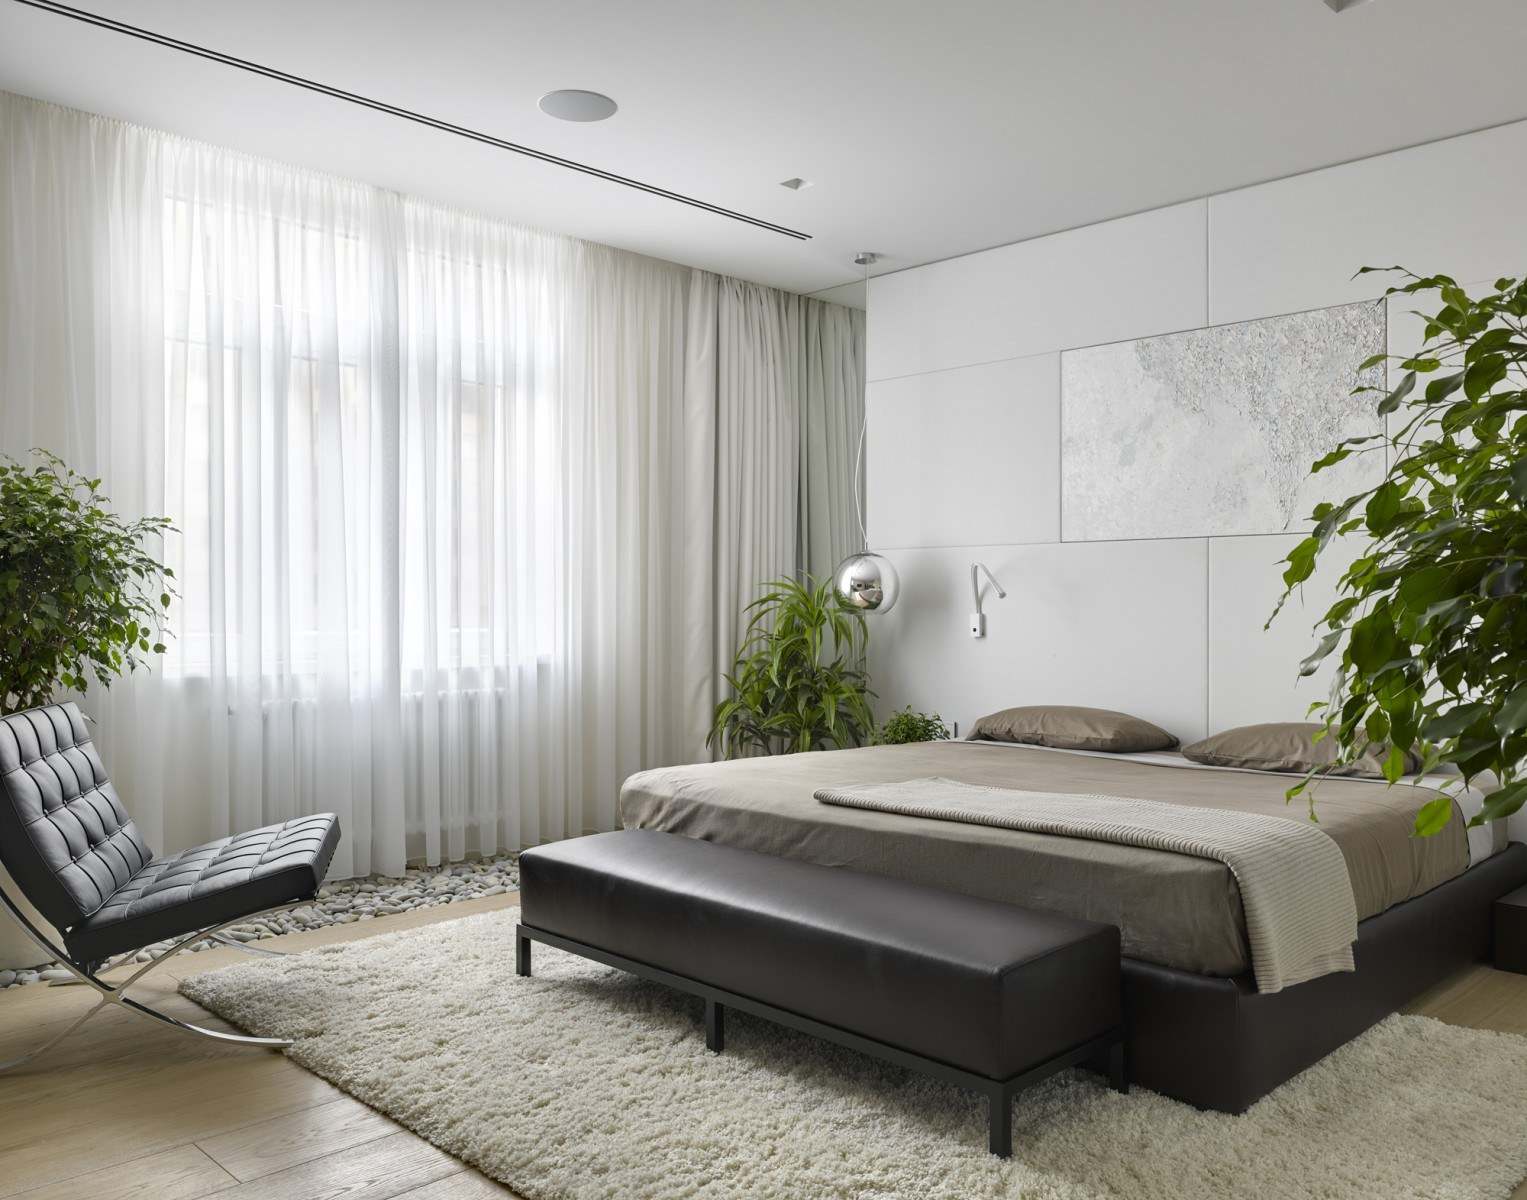 Bedroom Interior Design Ideas, Trends and Solutions 2020. Airy tulle for panoramic window